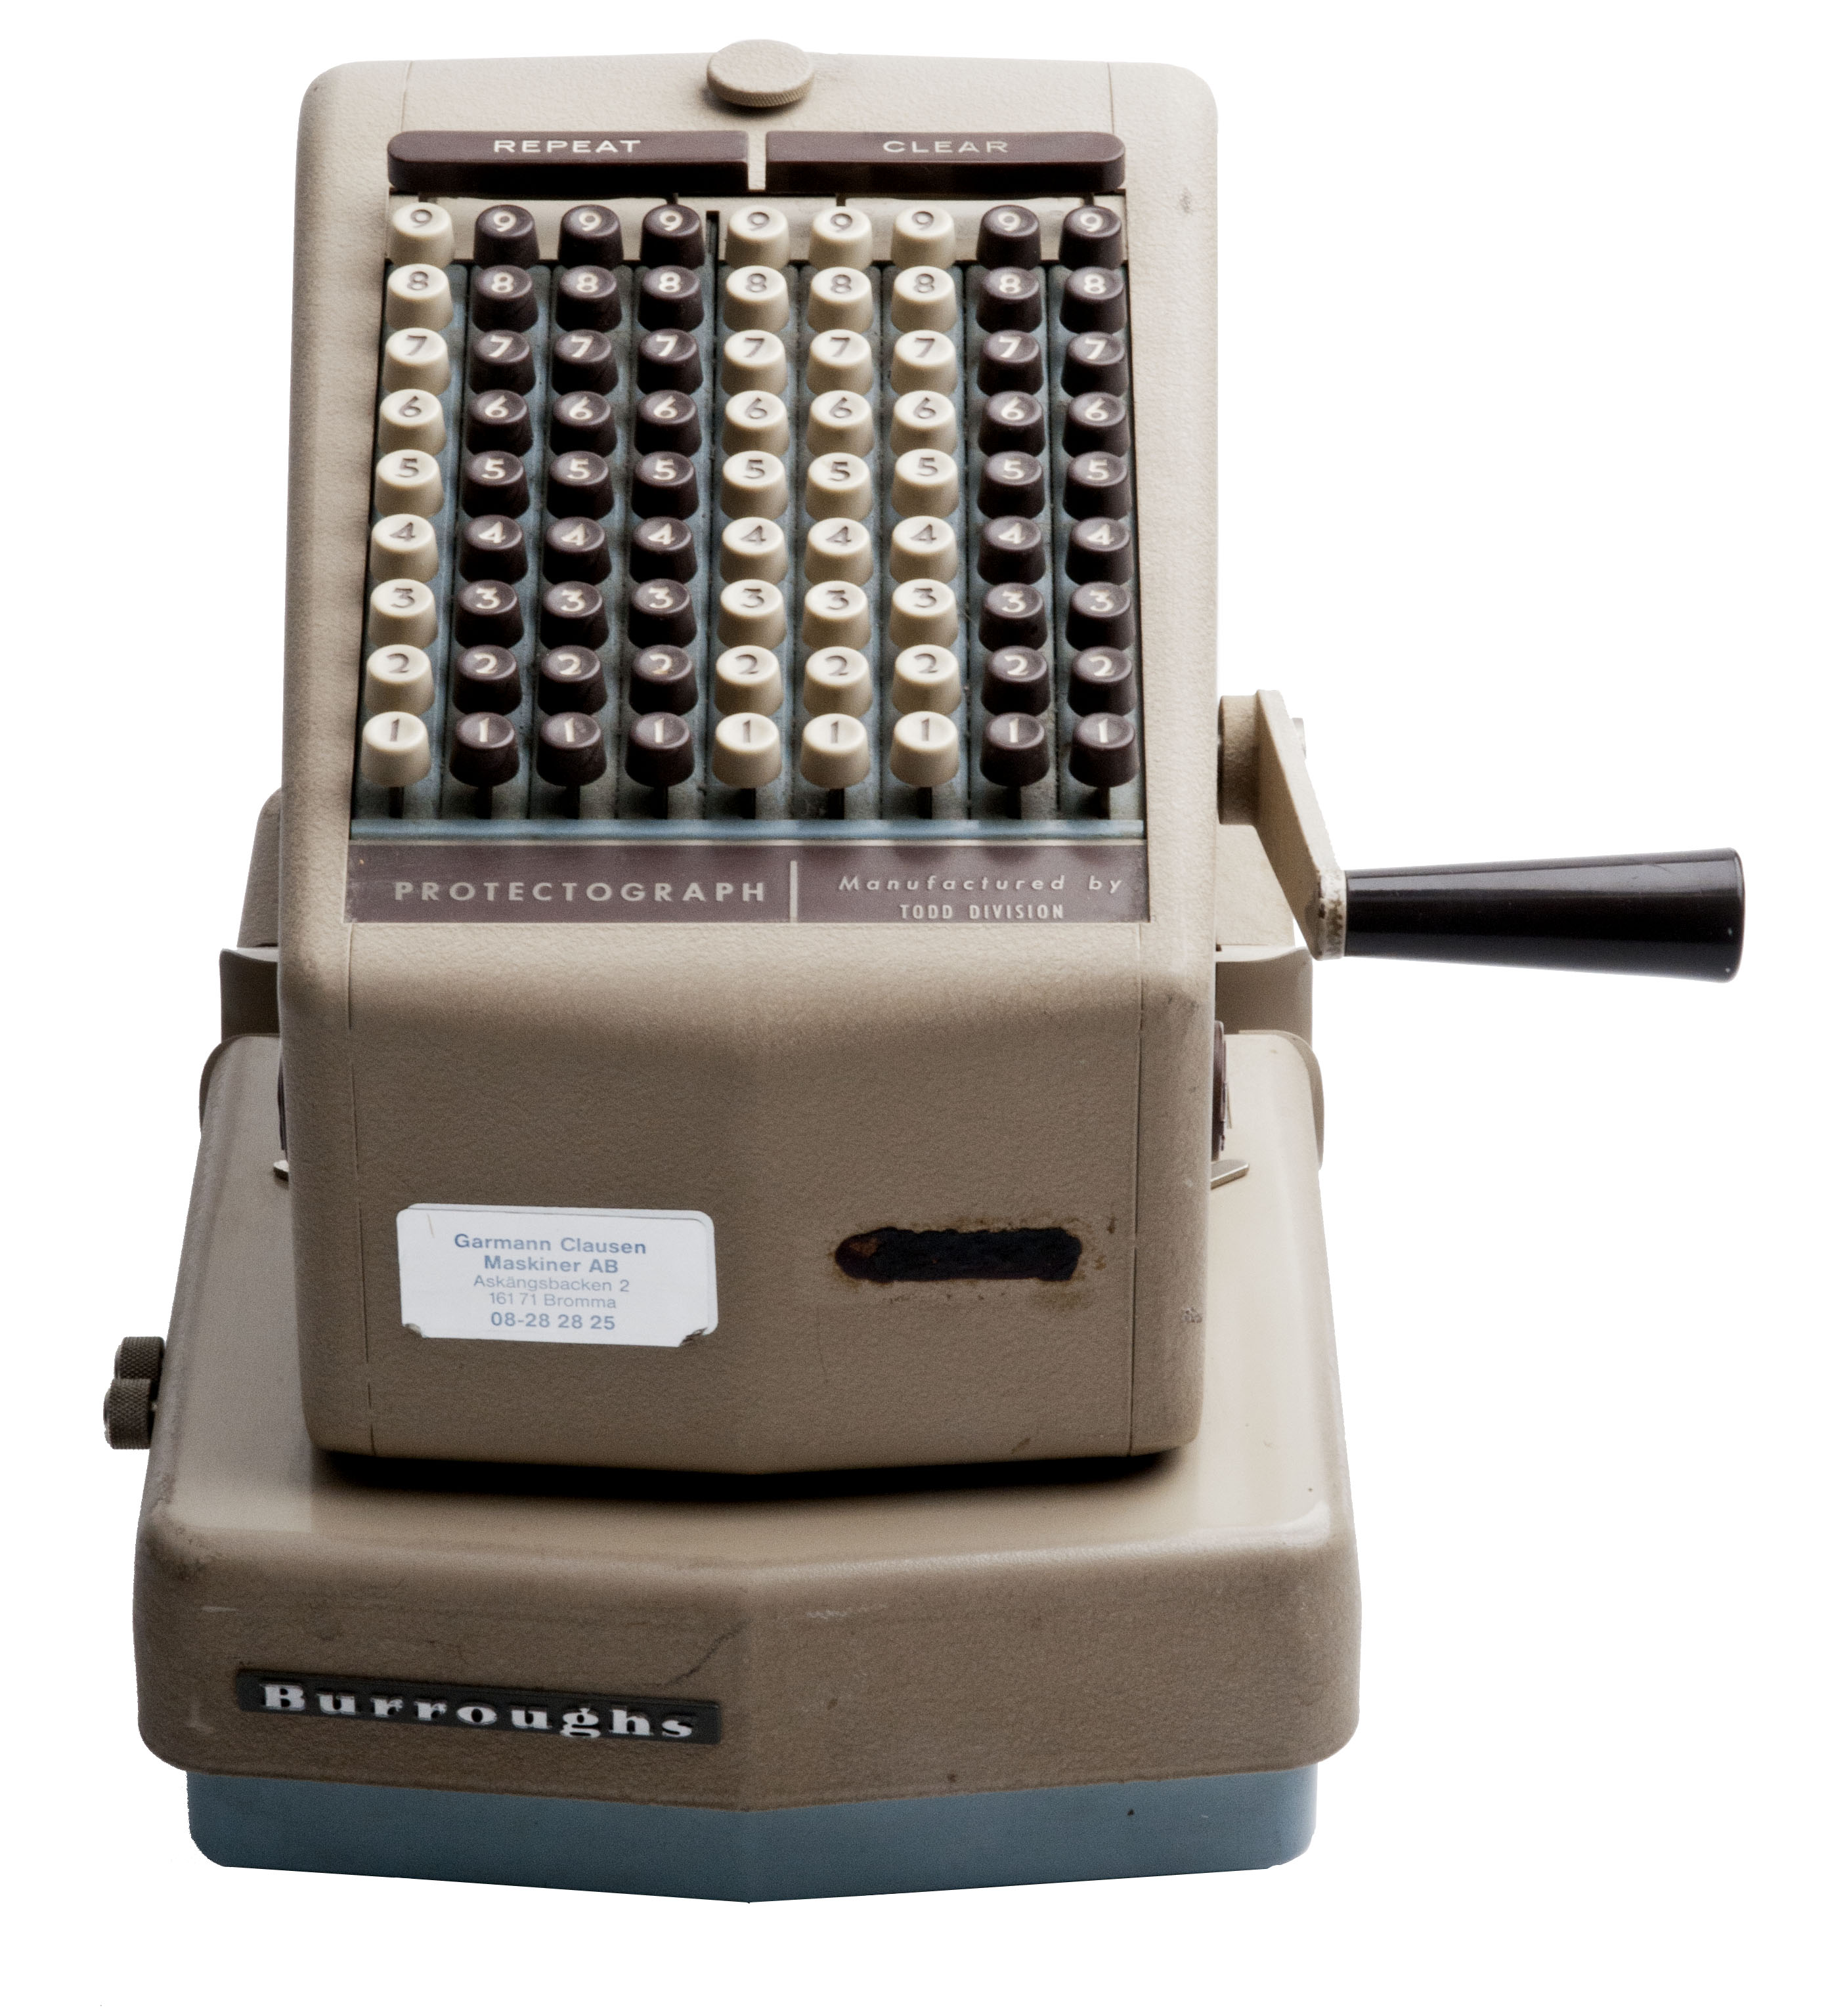 Burroughs Protectograph Check Writer T70 9